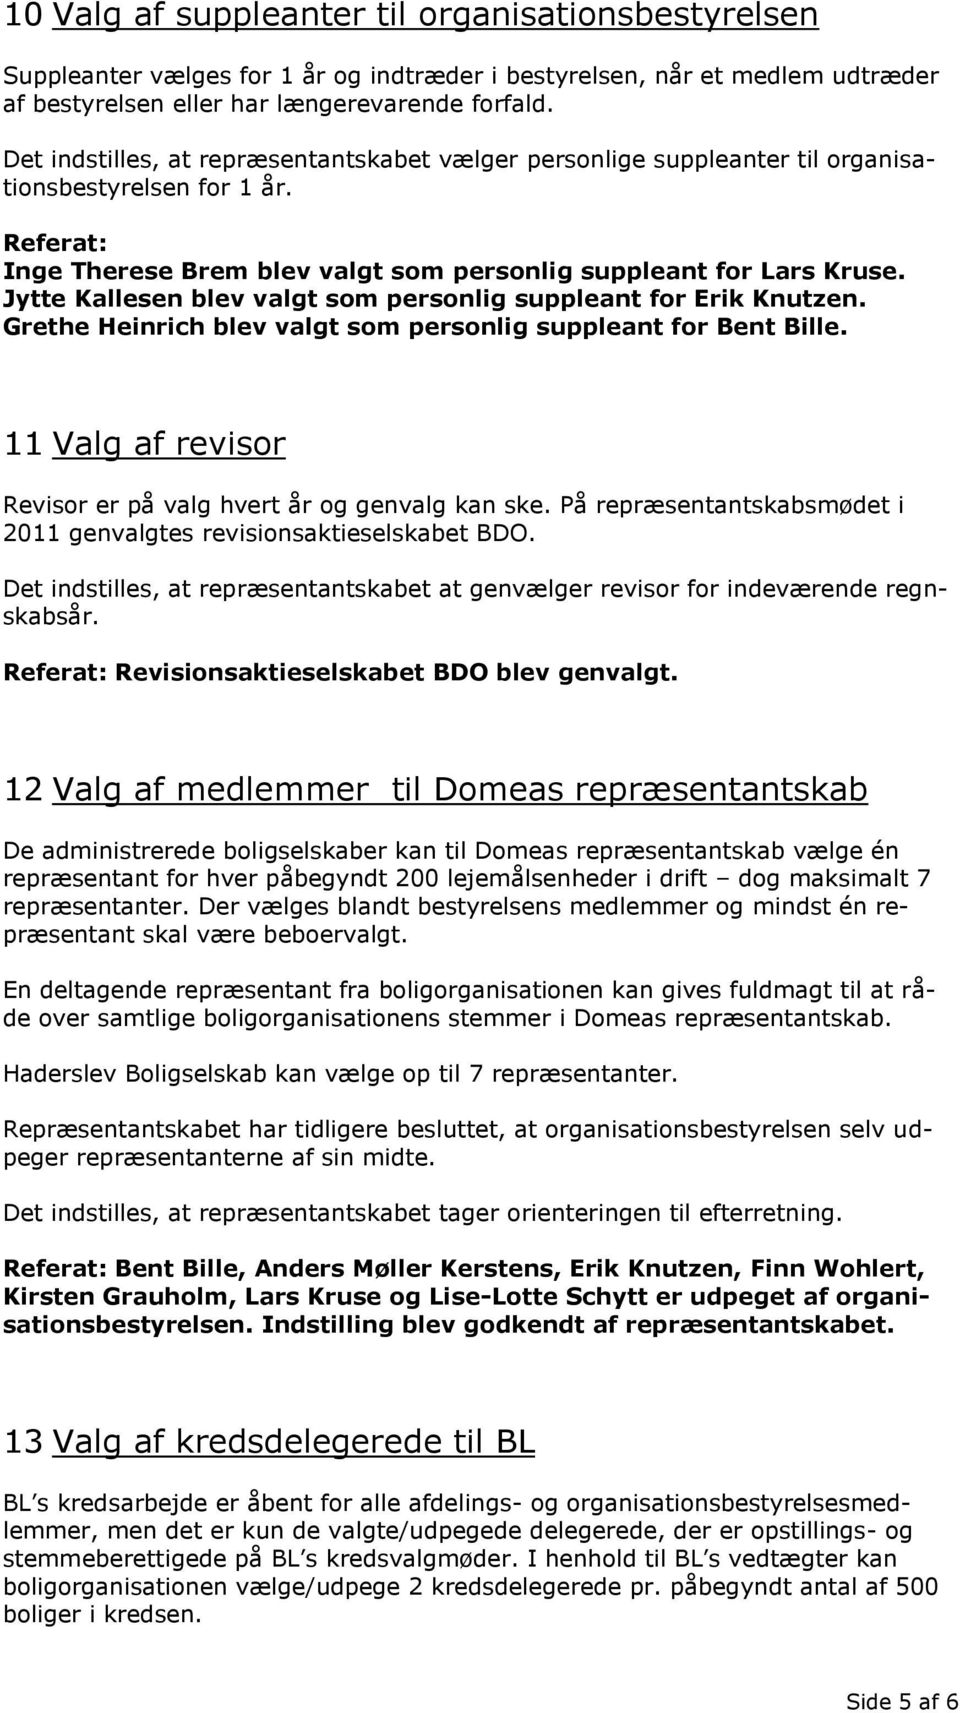 Jytte Kallesen blev valgt som personlig suppleant for Erik Knutzen. Grethe Heinrich blev valgt som personlig suppleant for Bent Bille.